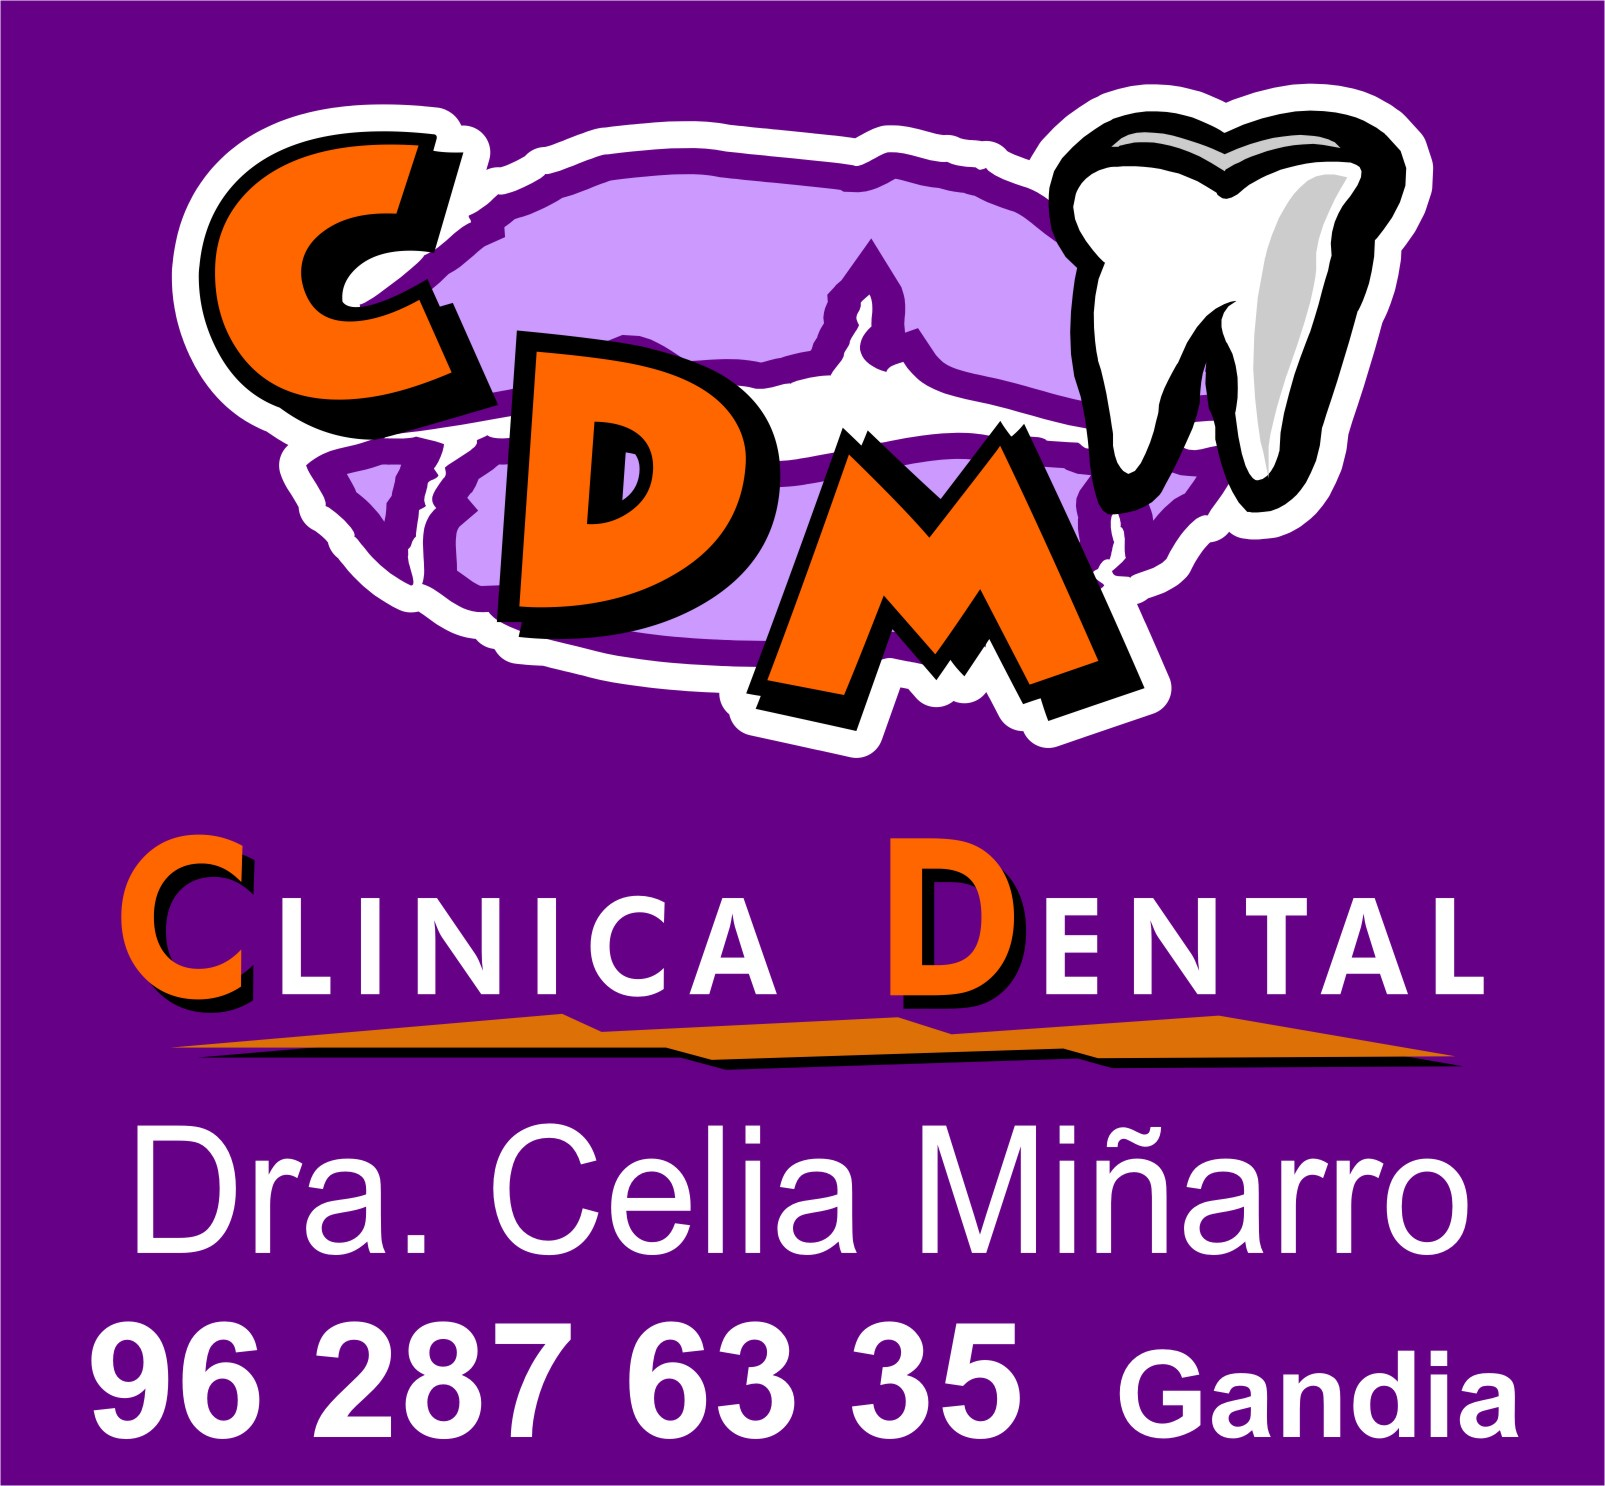 CLINICA DENTAL CELIA MIÑARRO